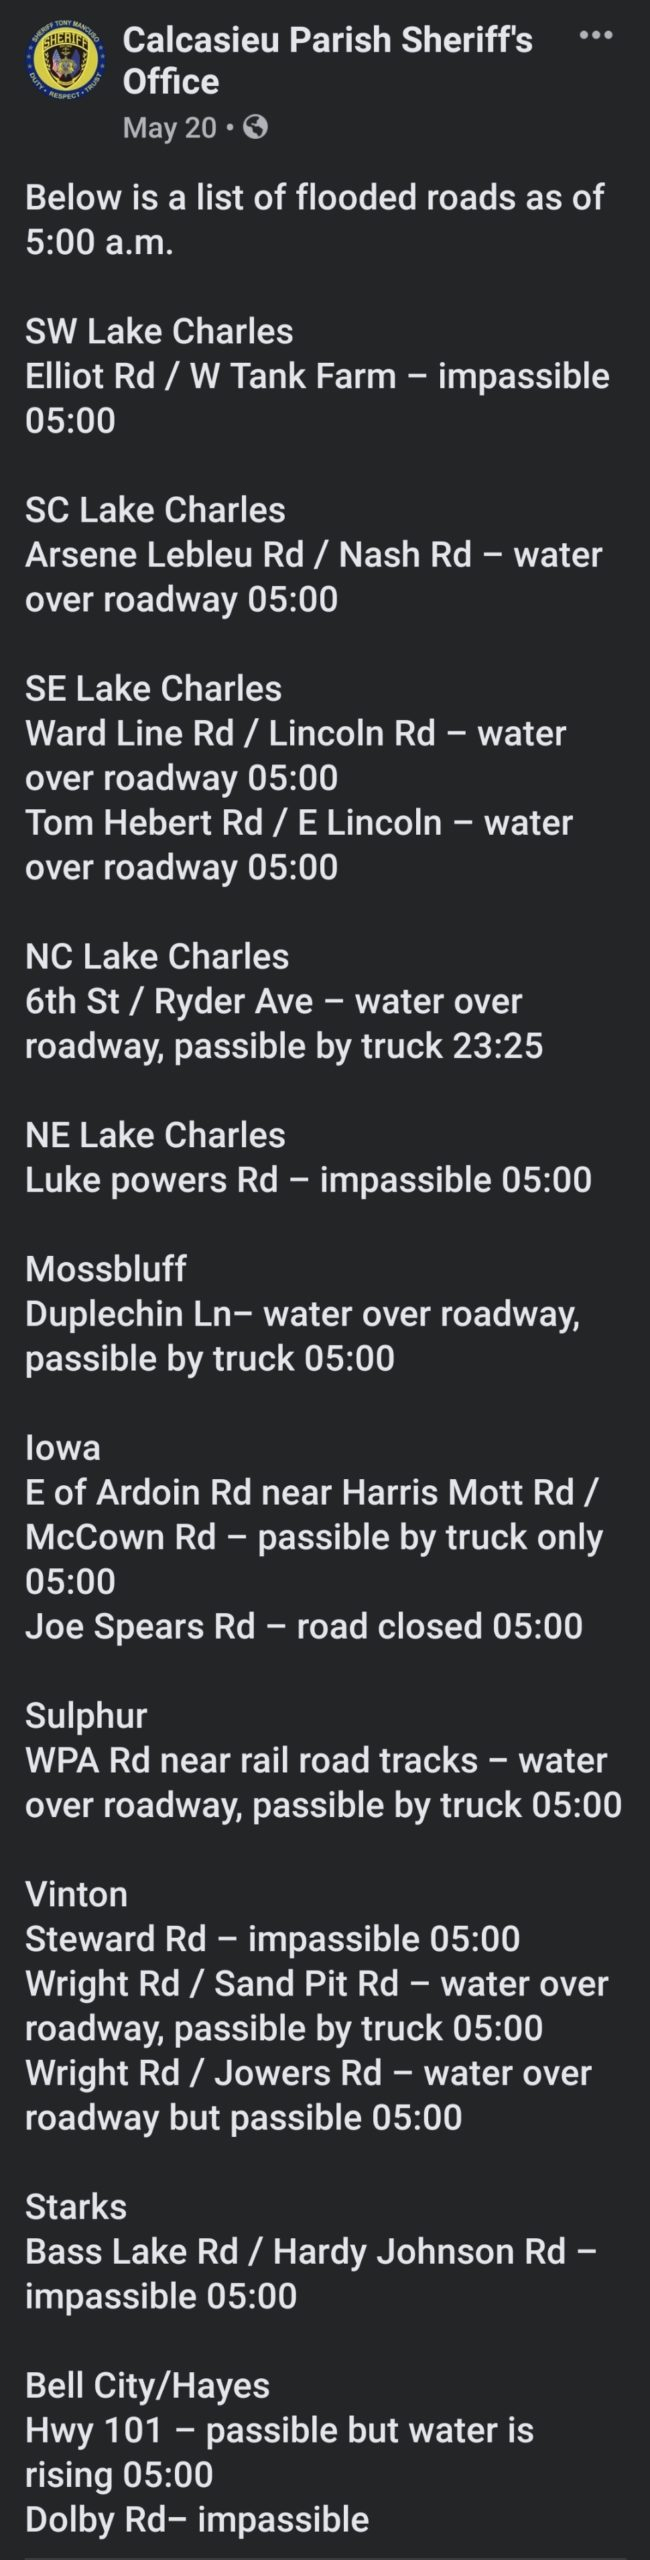 Alert ⚠️ roads flooded currently.